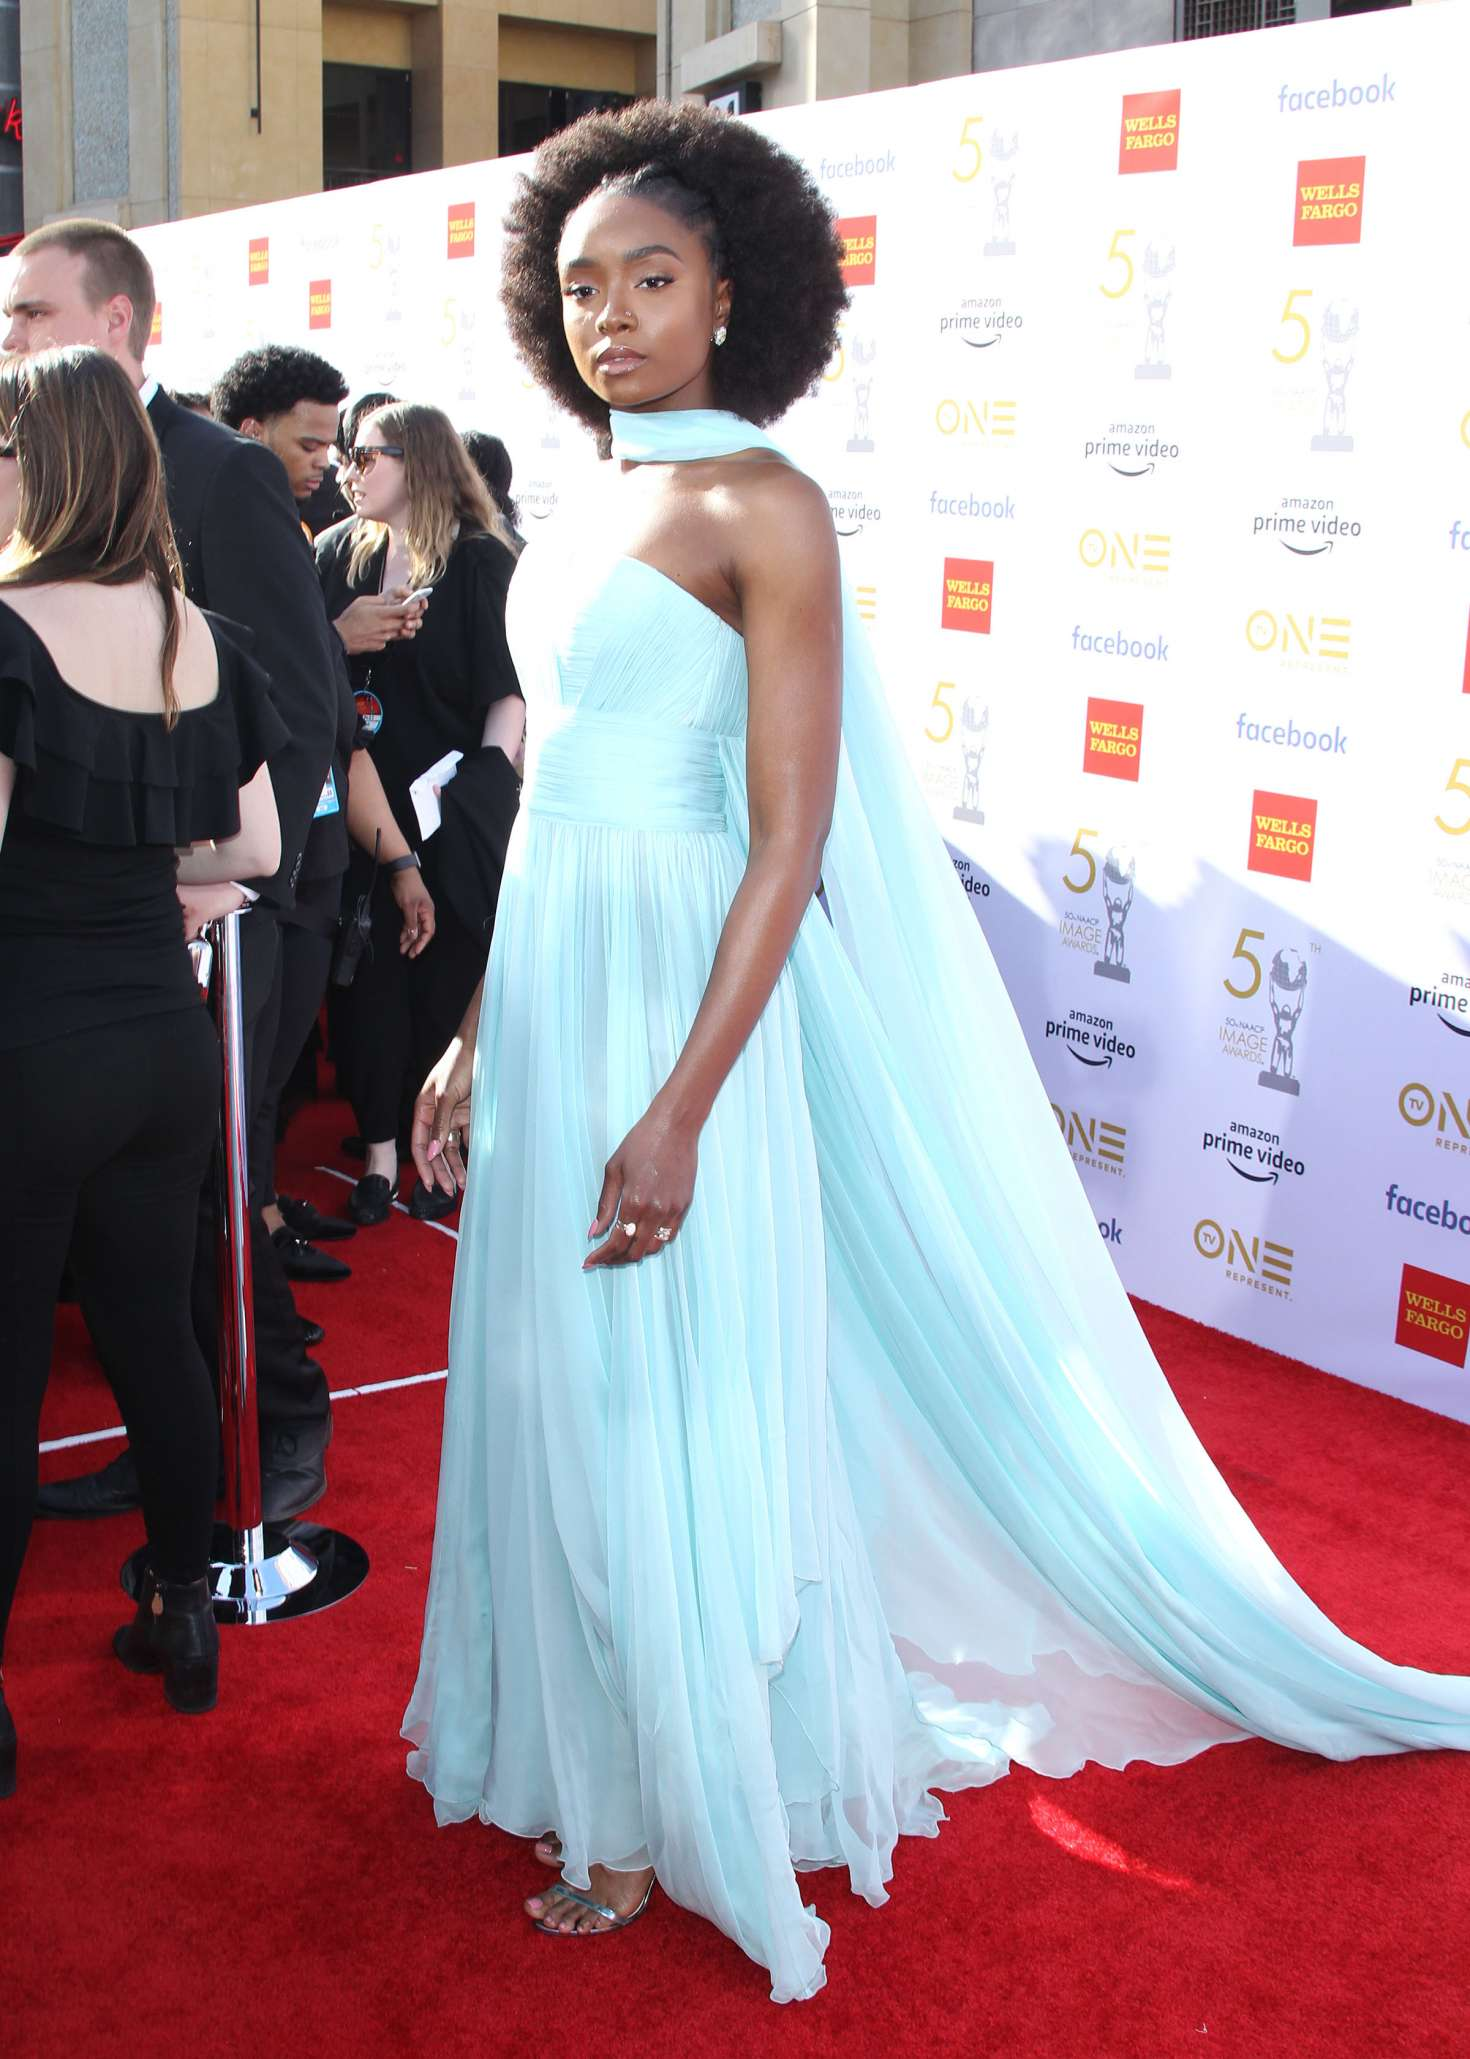 Kiki Layne 2019 : Kiki Layne: 50th NAACAP Image Awards -07